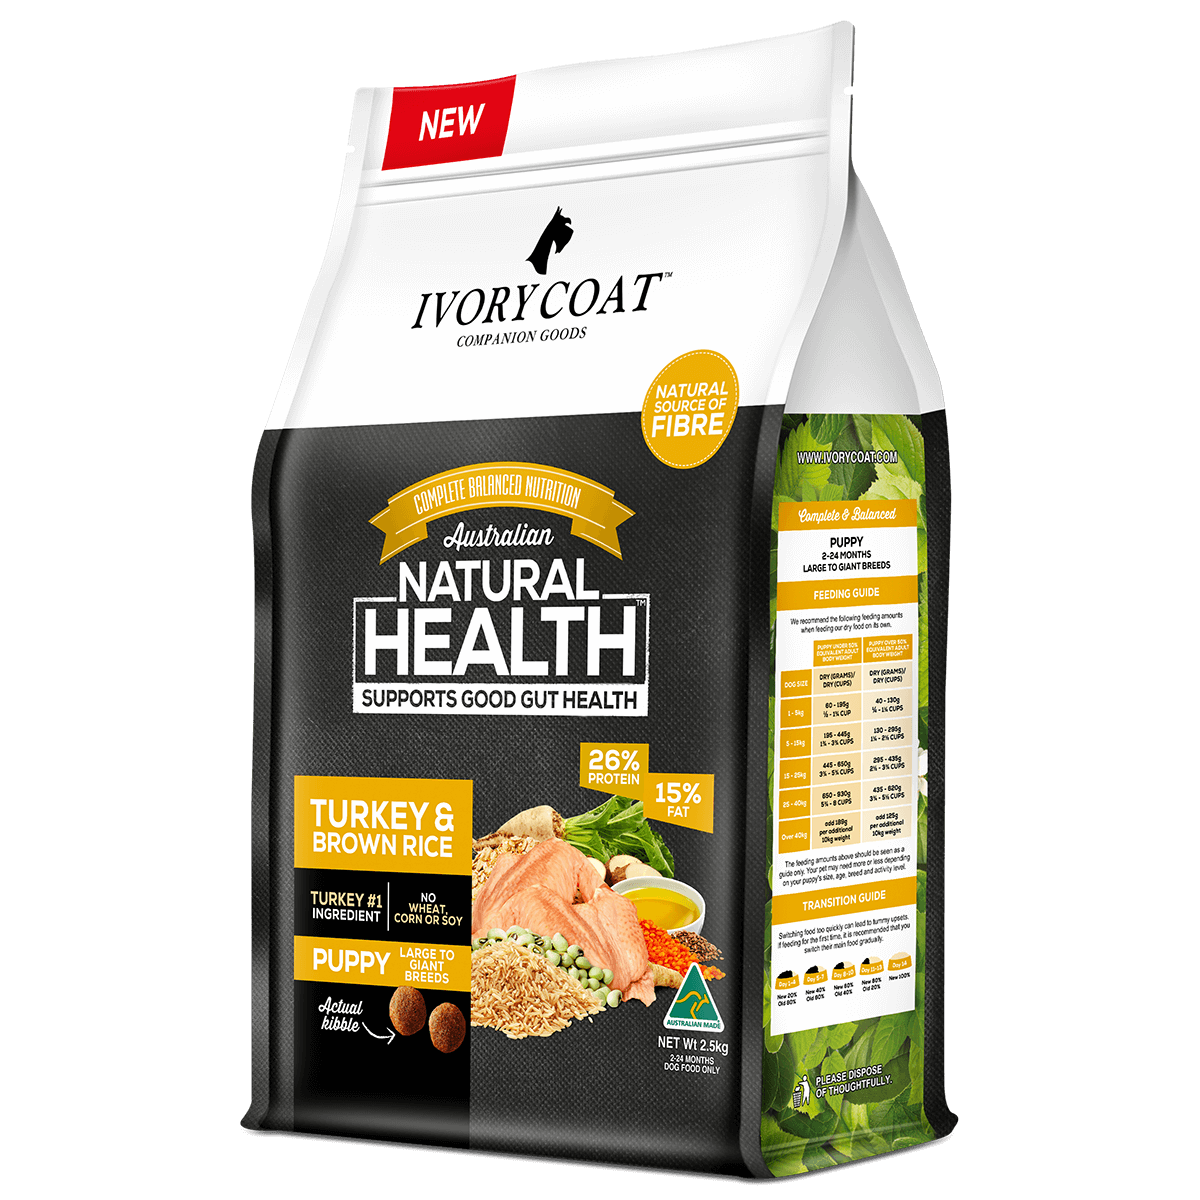 Ivory Coat | Dry Puppy Large Turkey & Brown Rice 2.5kg | Dry Dog Food | Right of pack